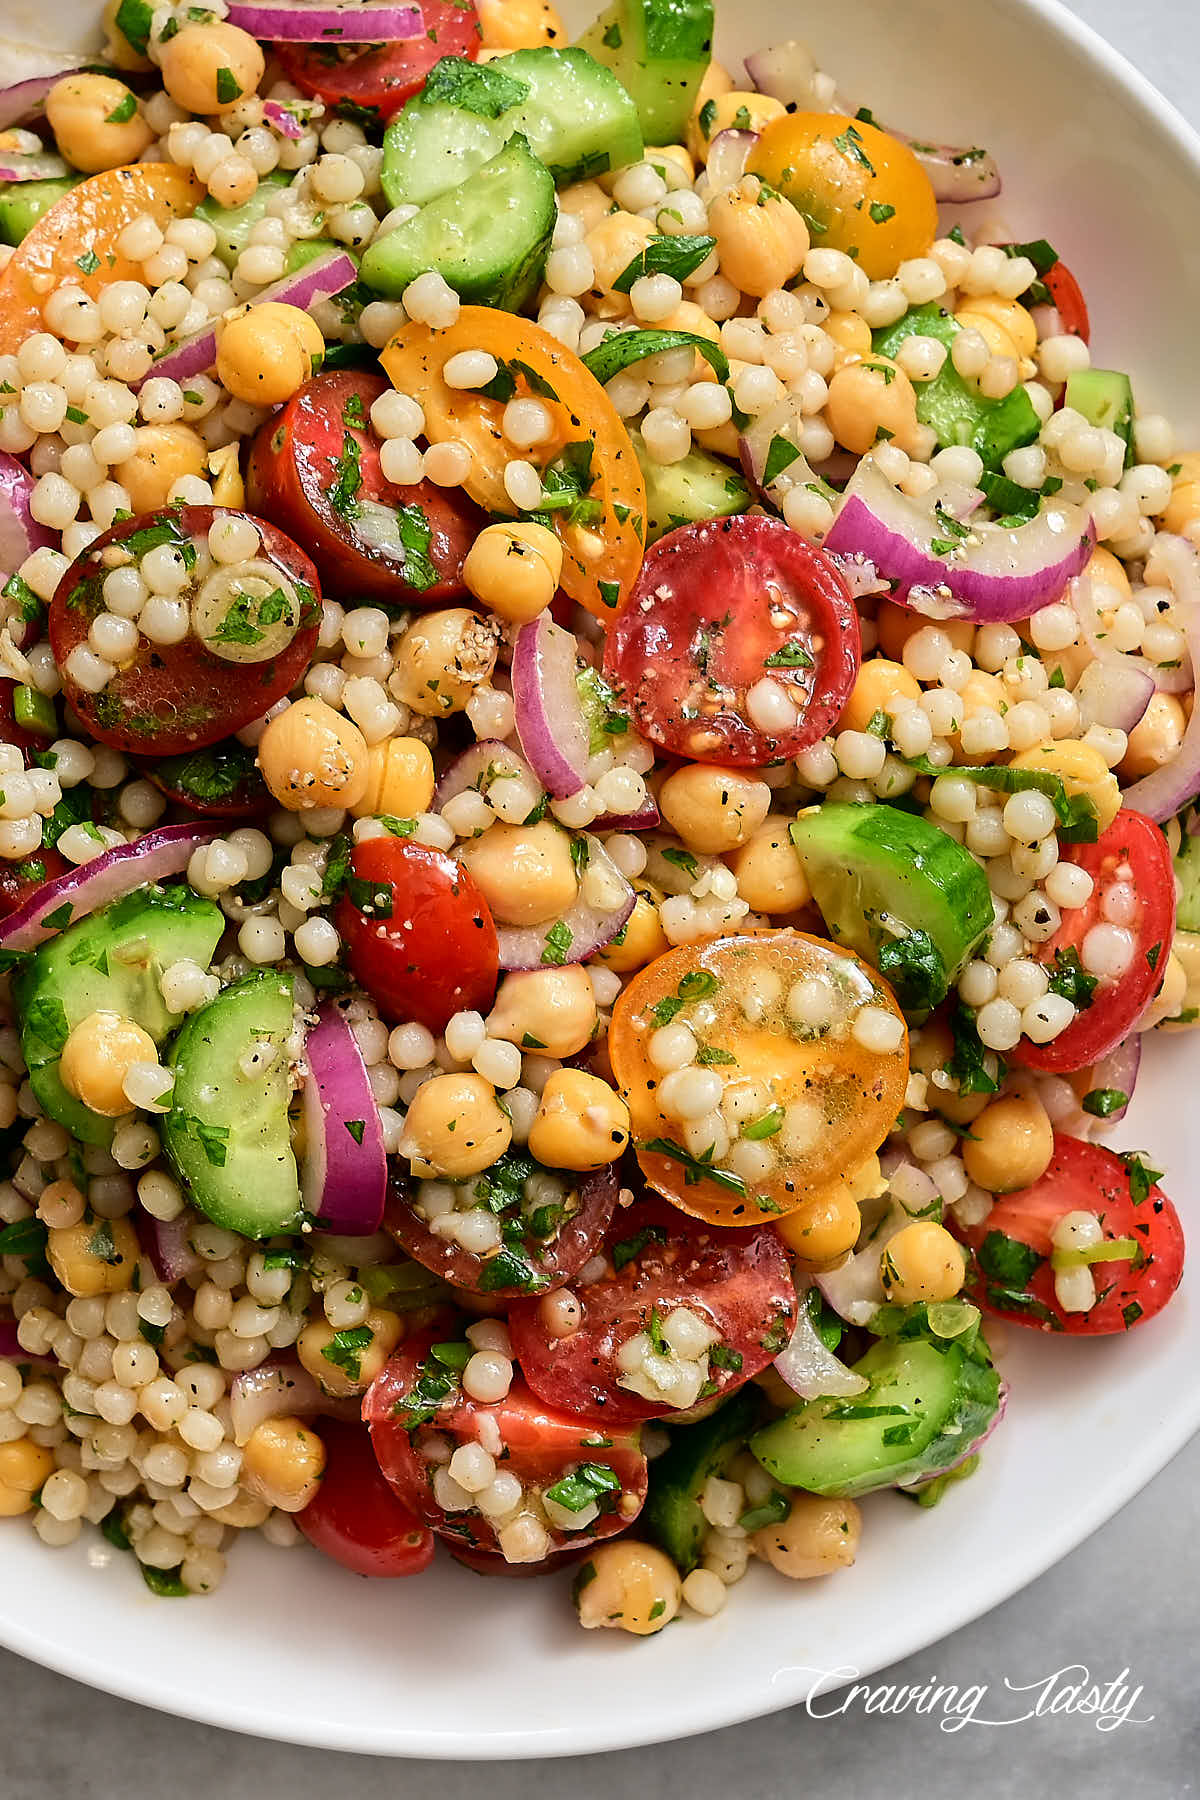 Israeli Couscous Salad Craving Tasty